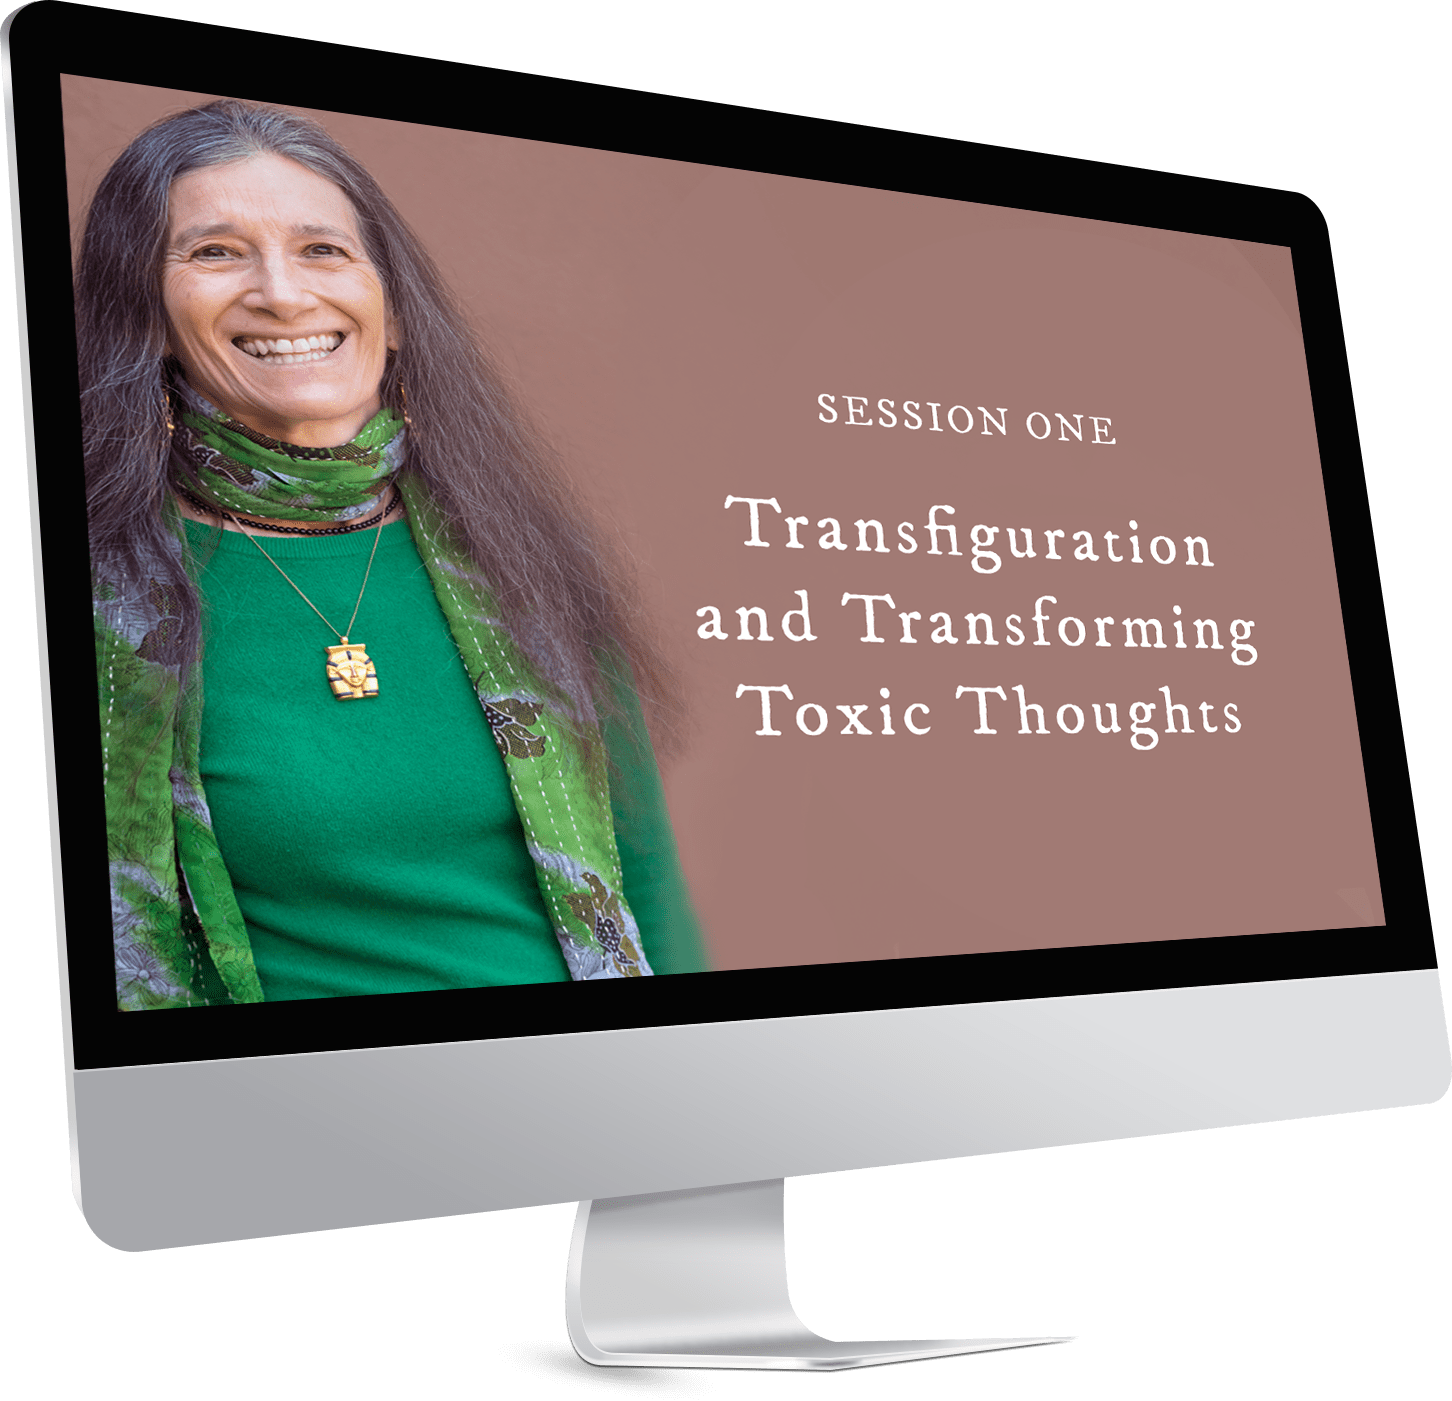 Sign-Up to receive free access to Session One: Transfiguration and Transforming Toxic Thoughts with Sandra Ingerman.